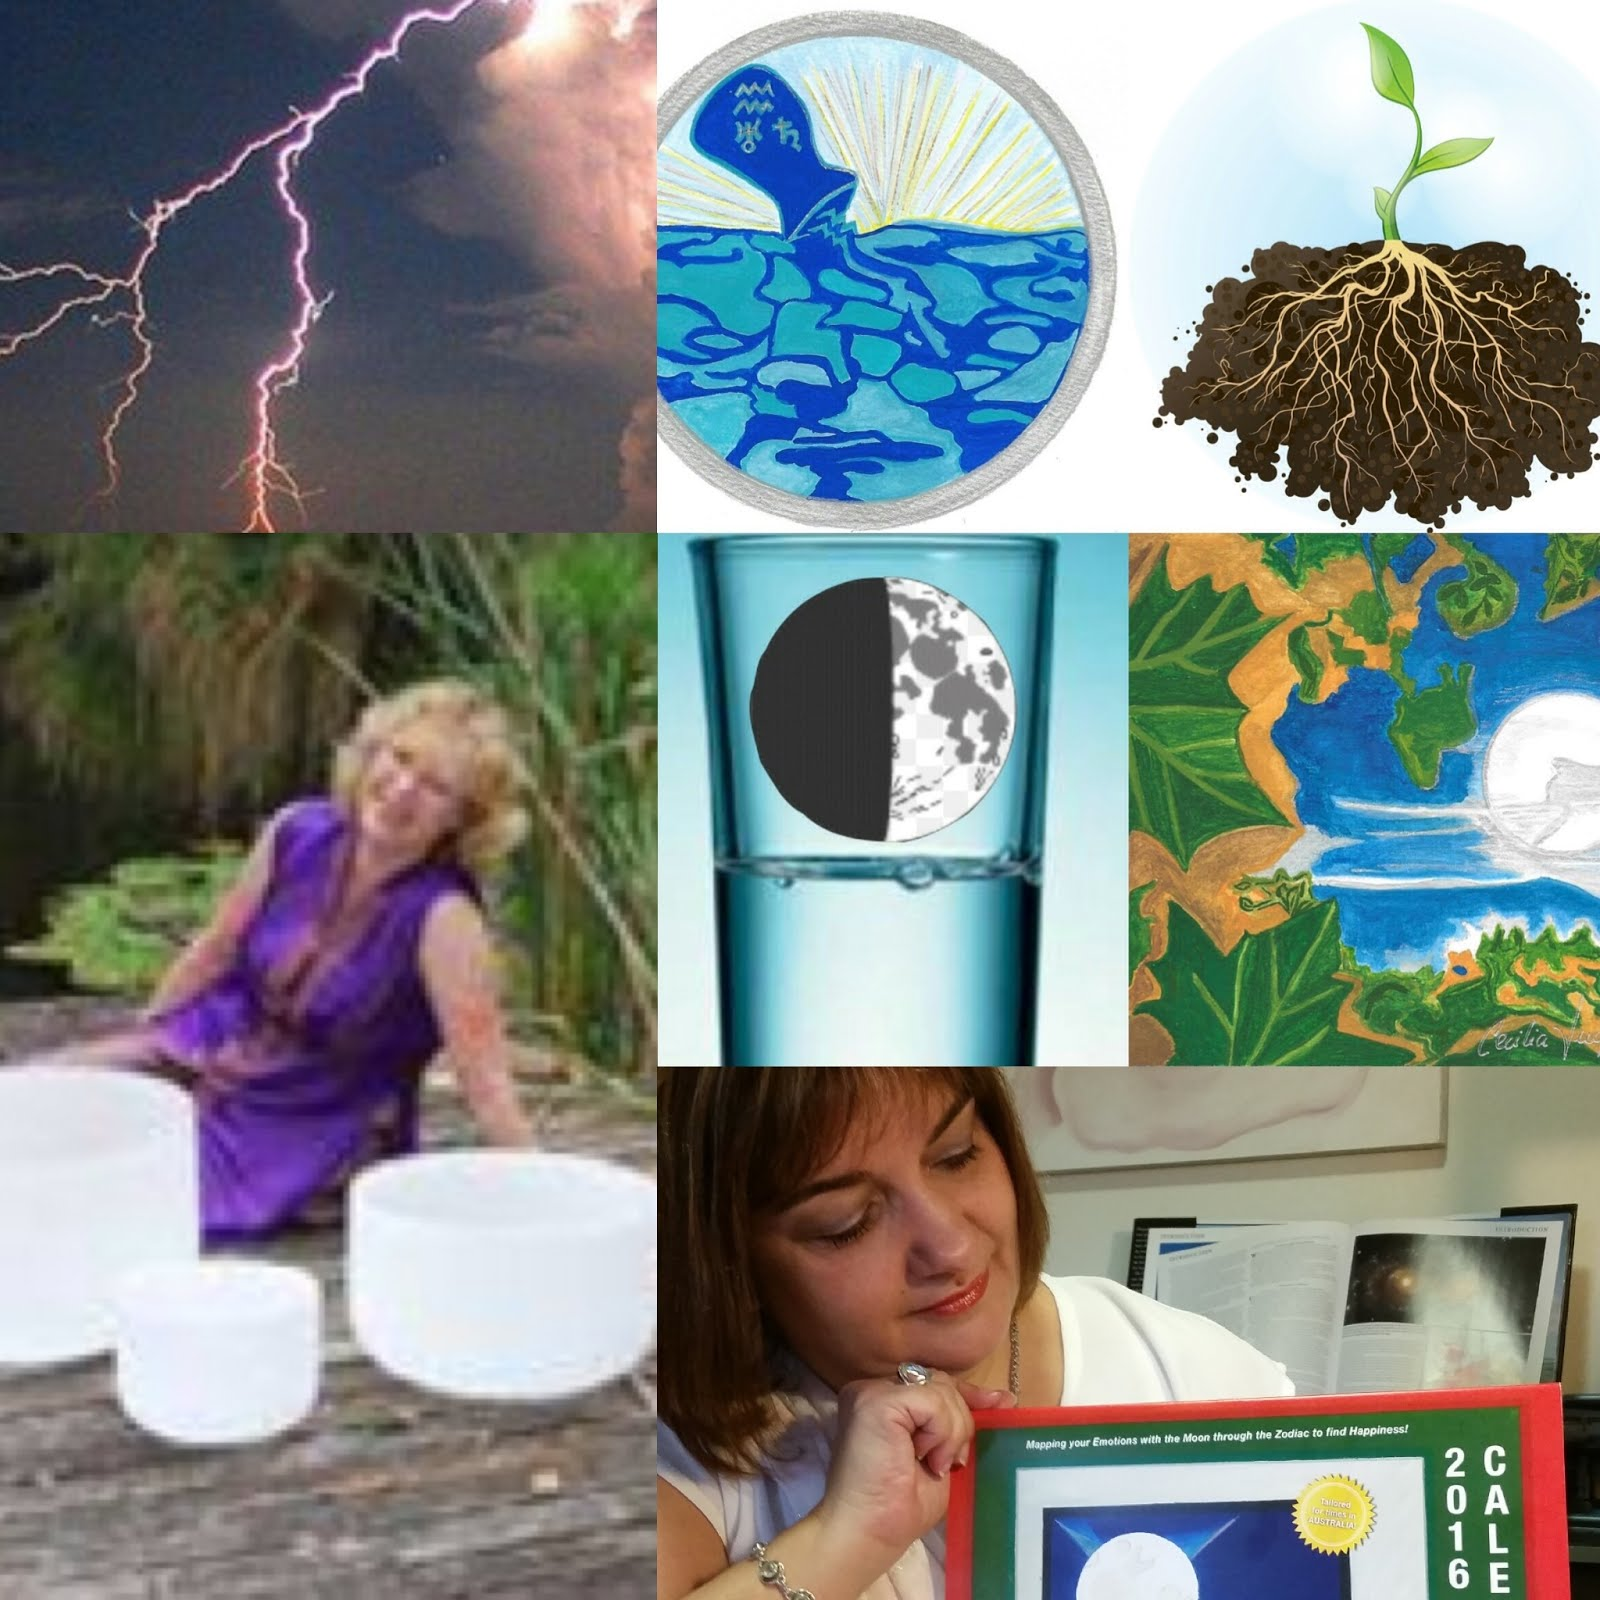 Thrive with Aquarius New Moon Cycle